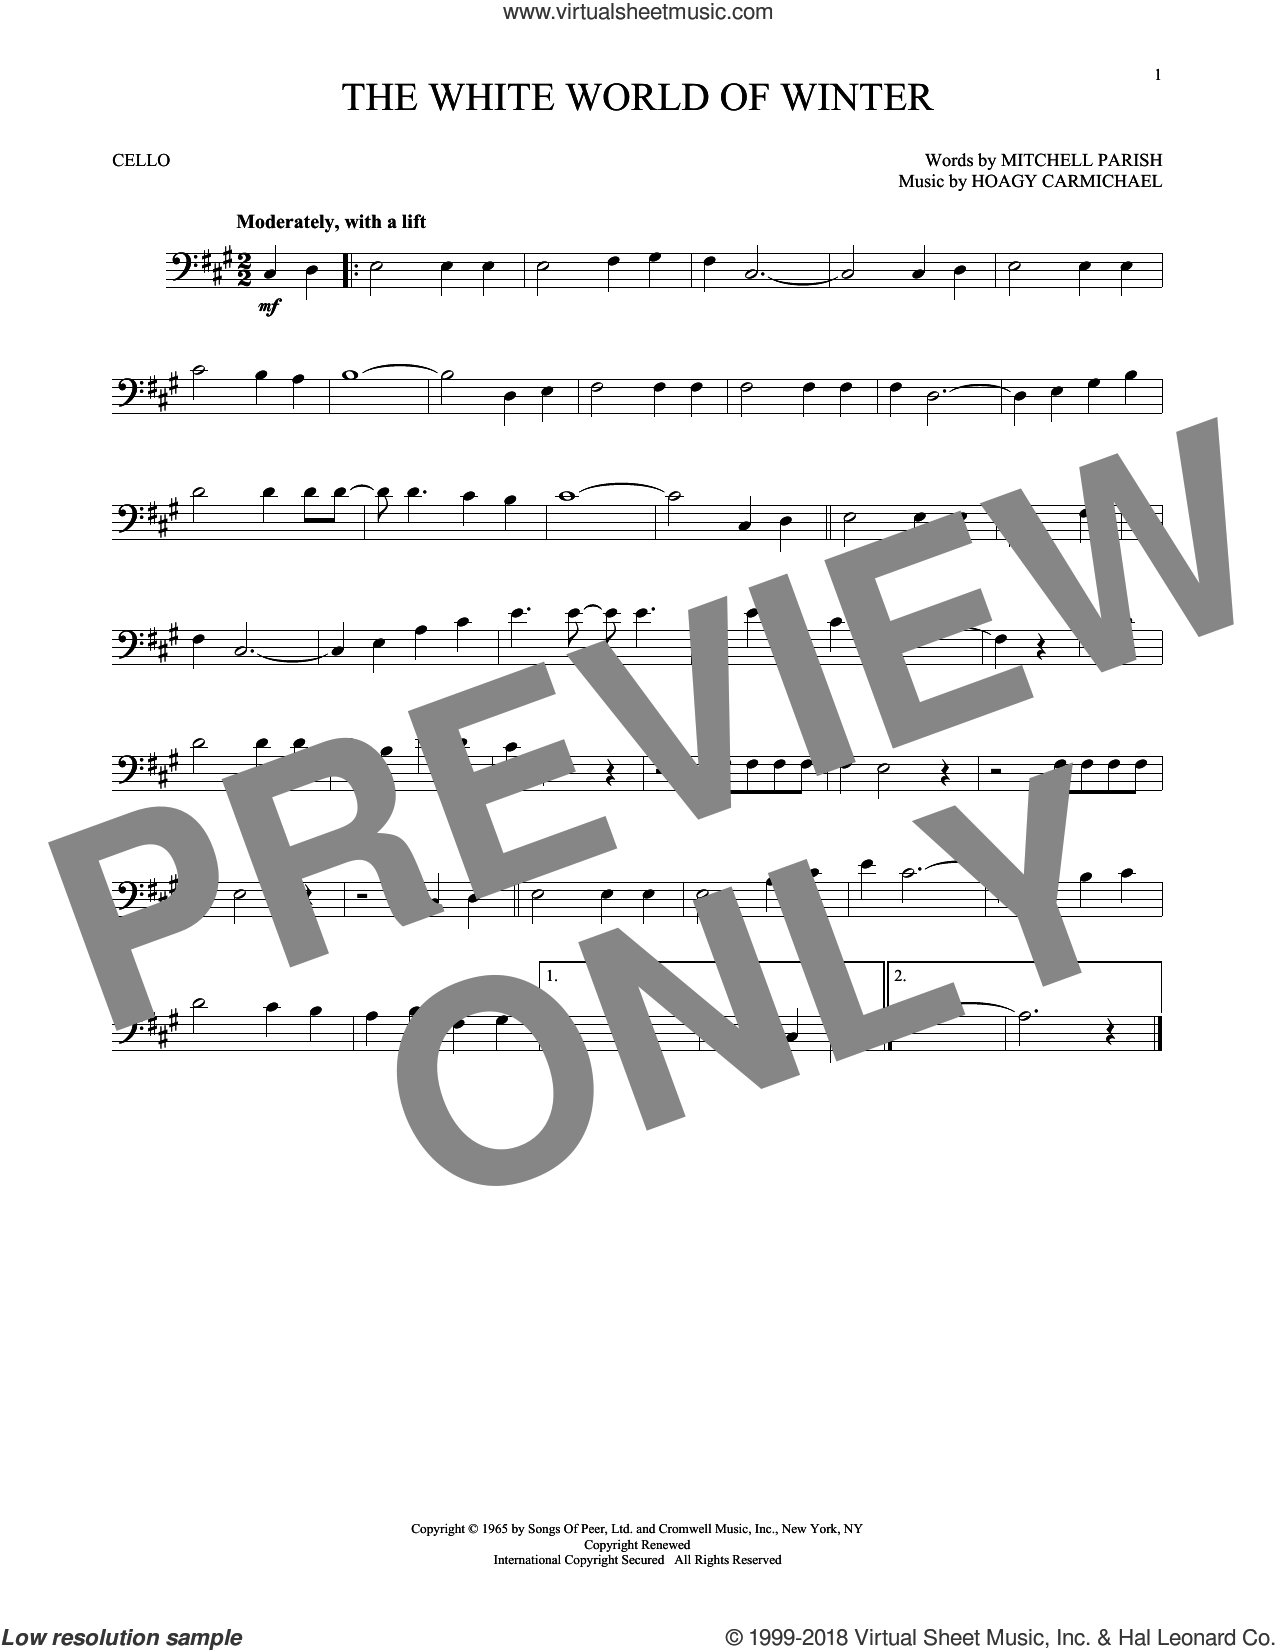 The White World Of Winter sheet music for cello solo by Hoagy Carmichael and Mitchell Parish, Christmas carol score, intermediate cello. Score Image Preview.